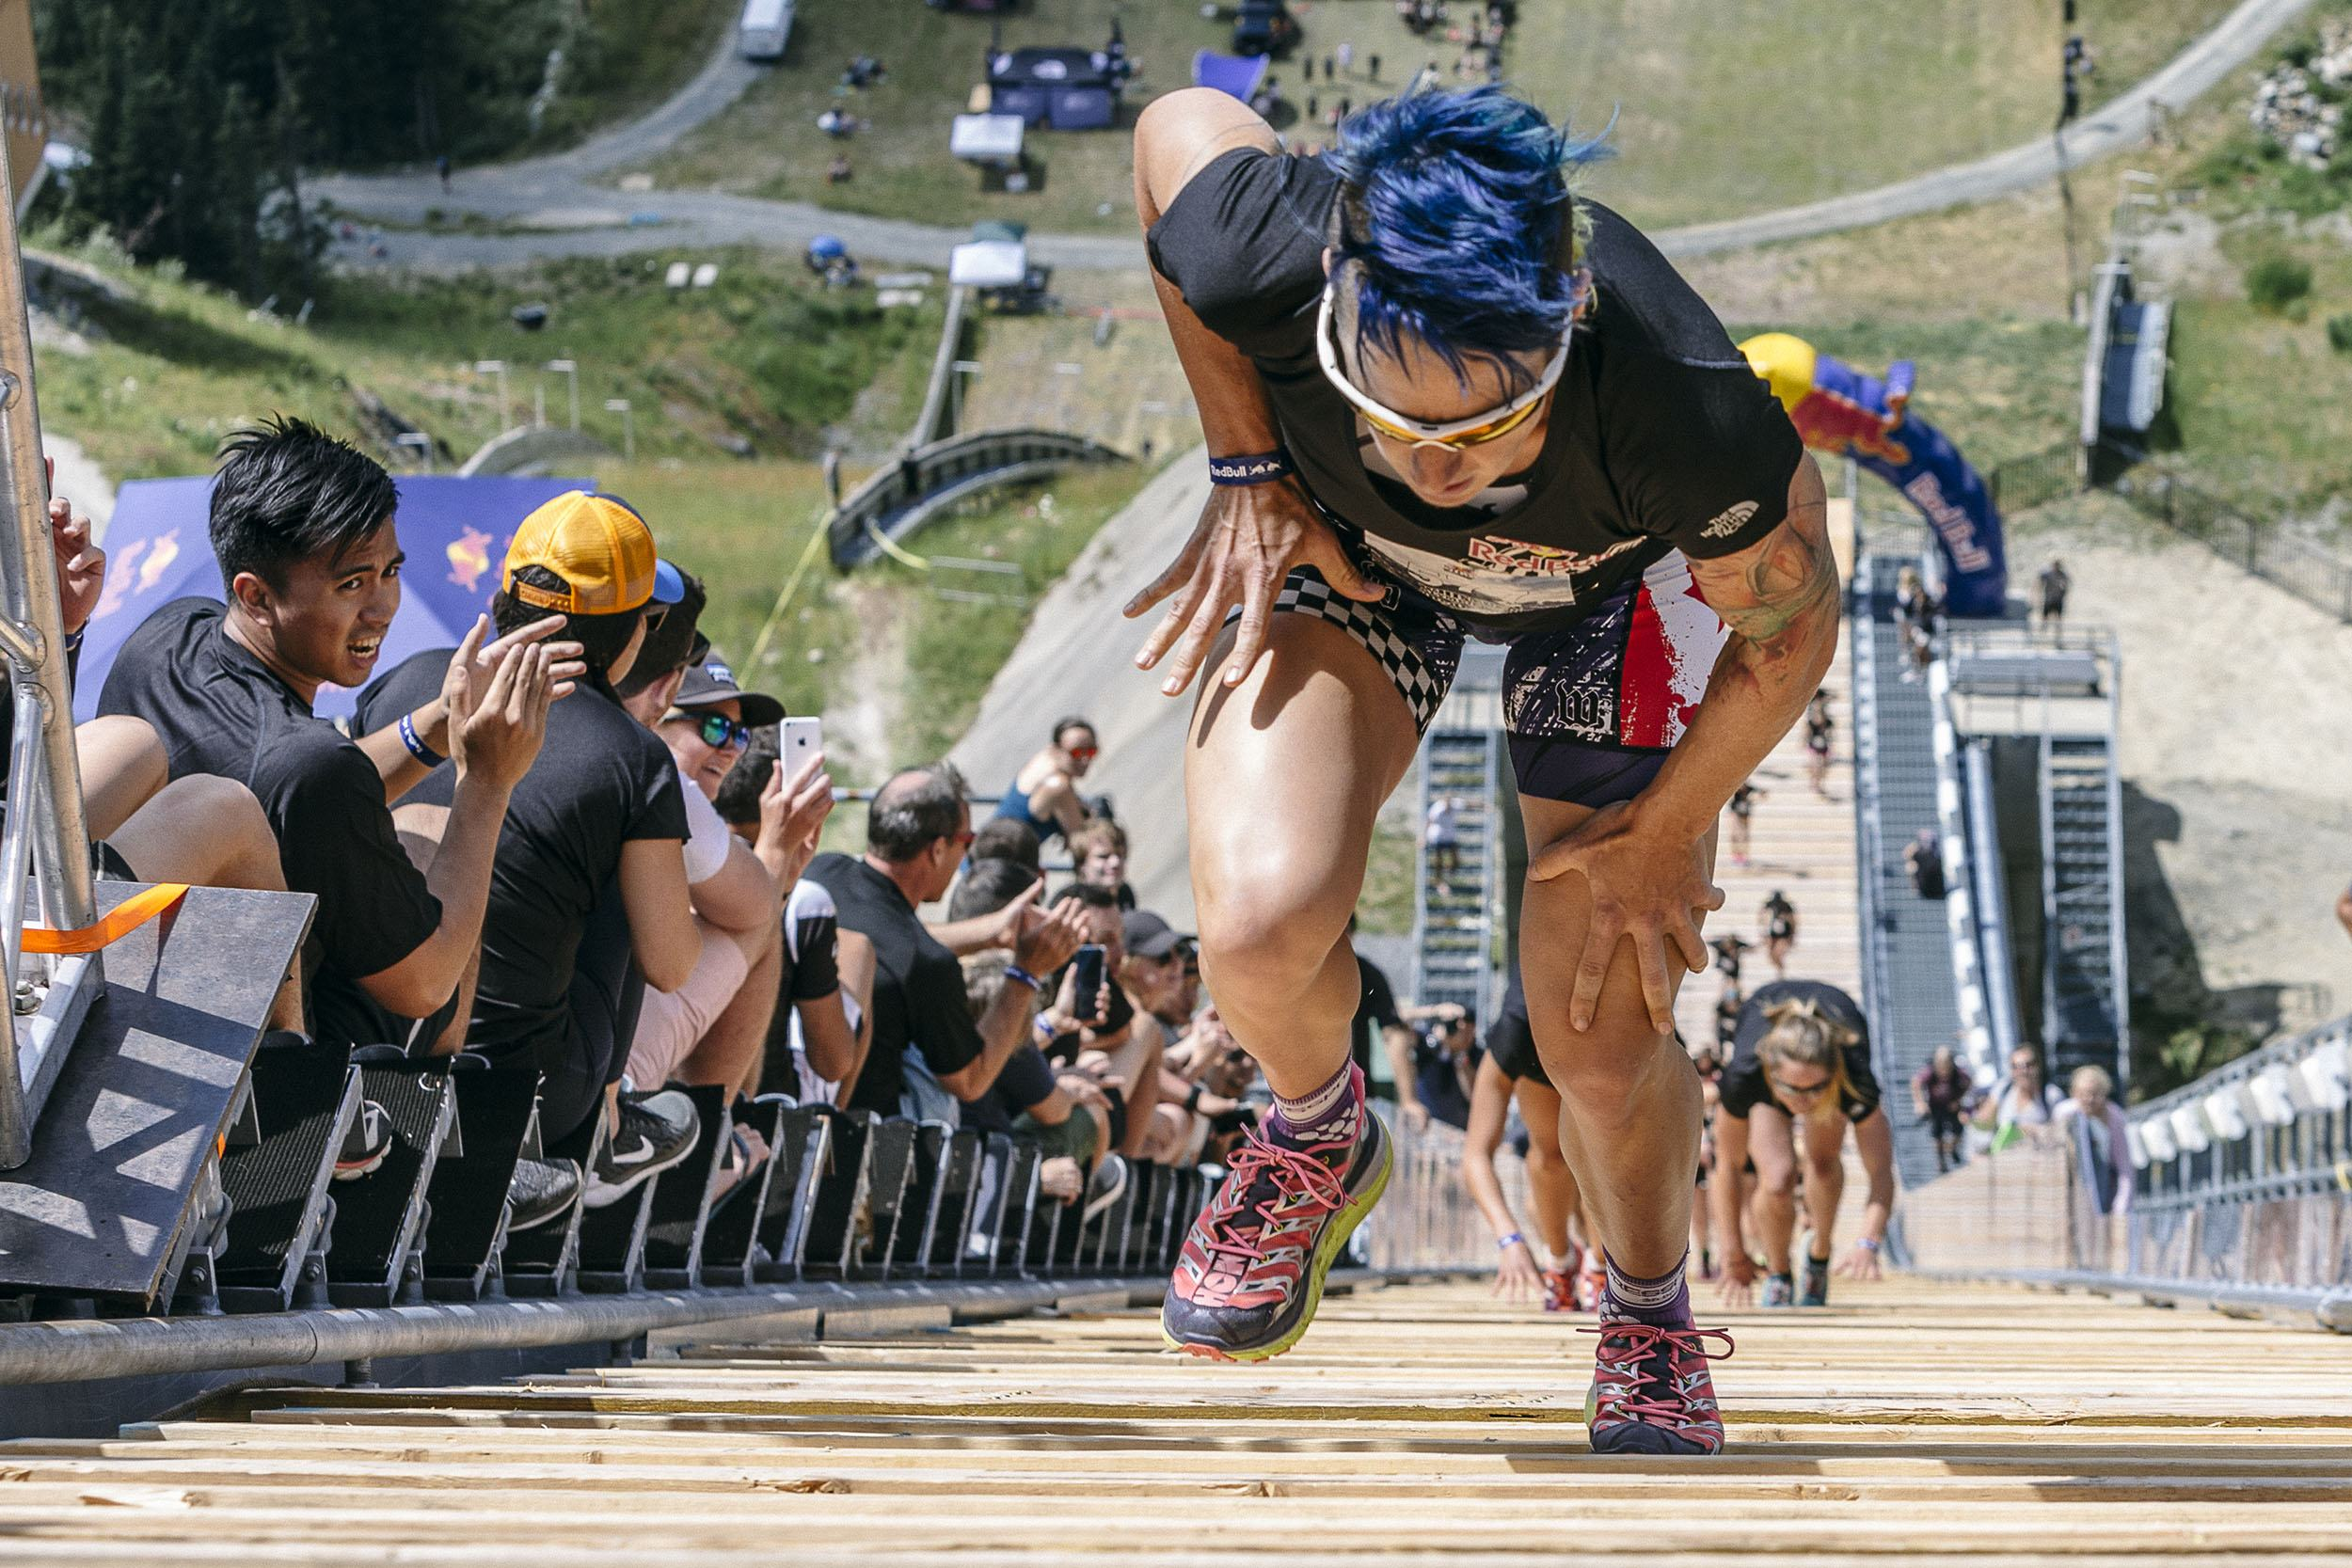 Rachel McBride leads the women to a first place finish at Red Bull 400 in Whistler, Canada on July 30, 2016 (Scott Serfas/Red Bull Content Pool)